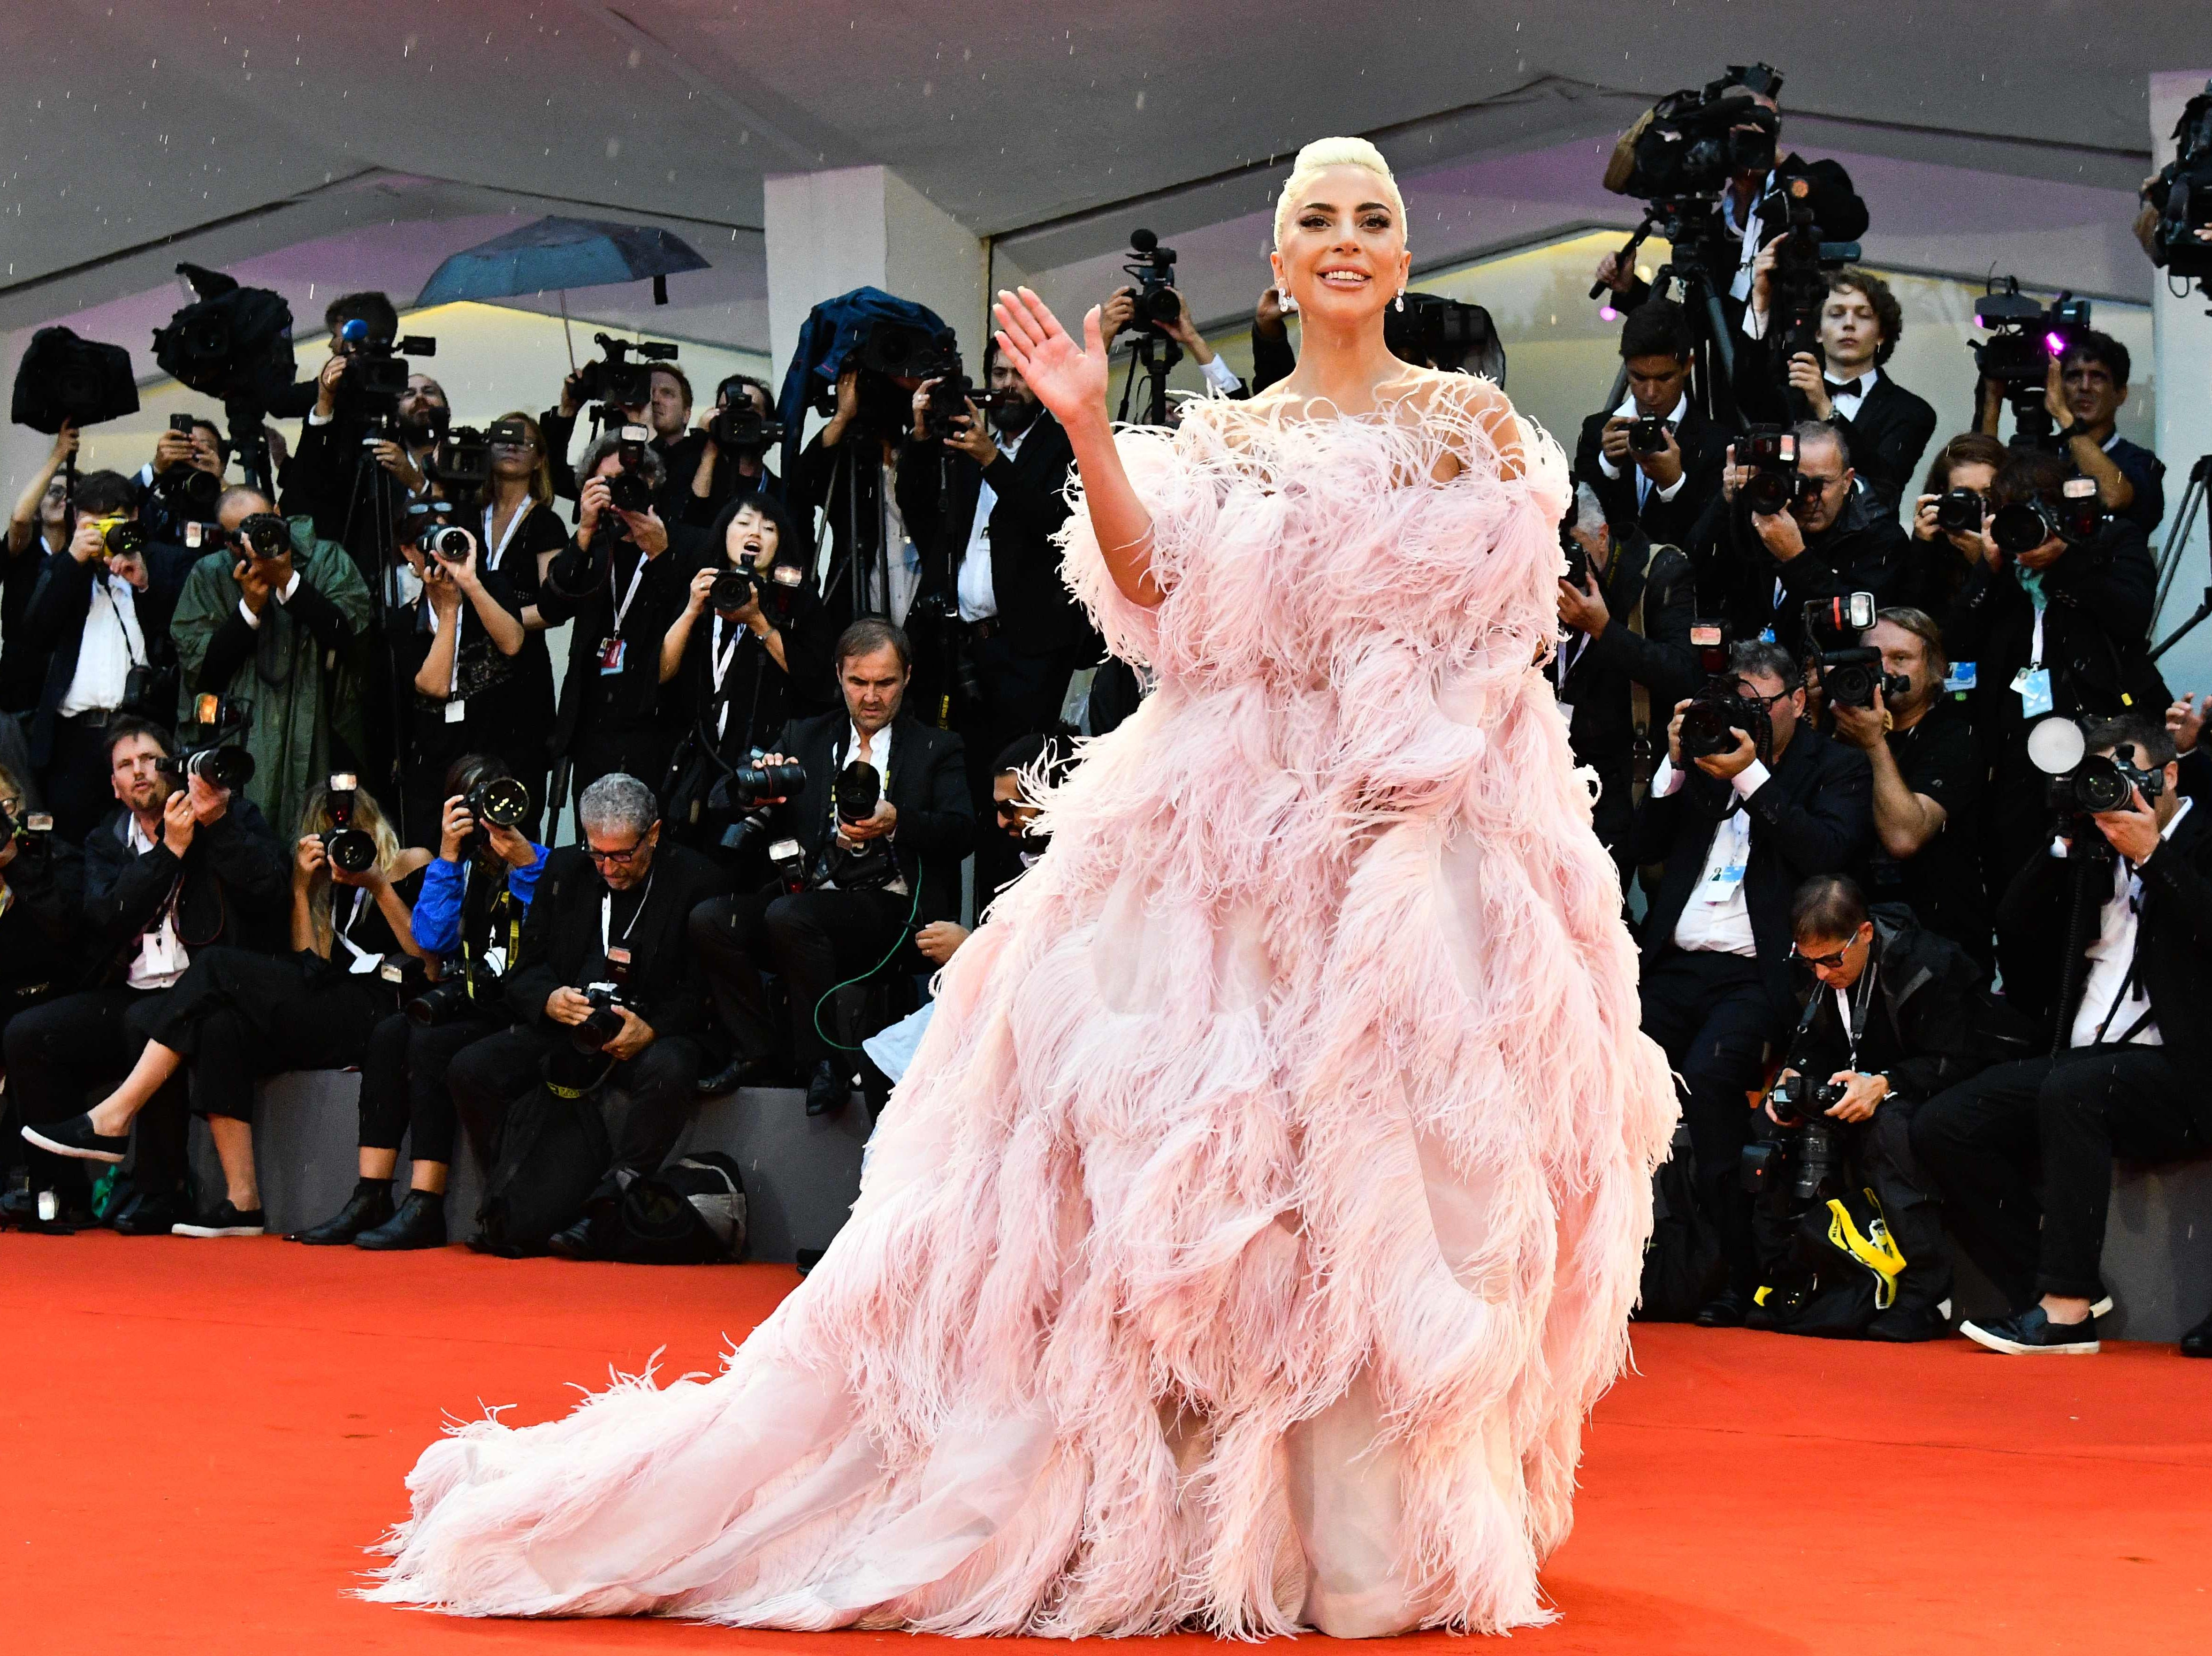 Lady Gaga wore a stunning pink gown to the event.